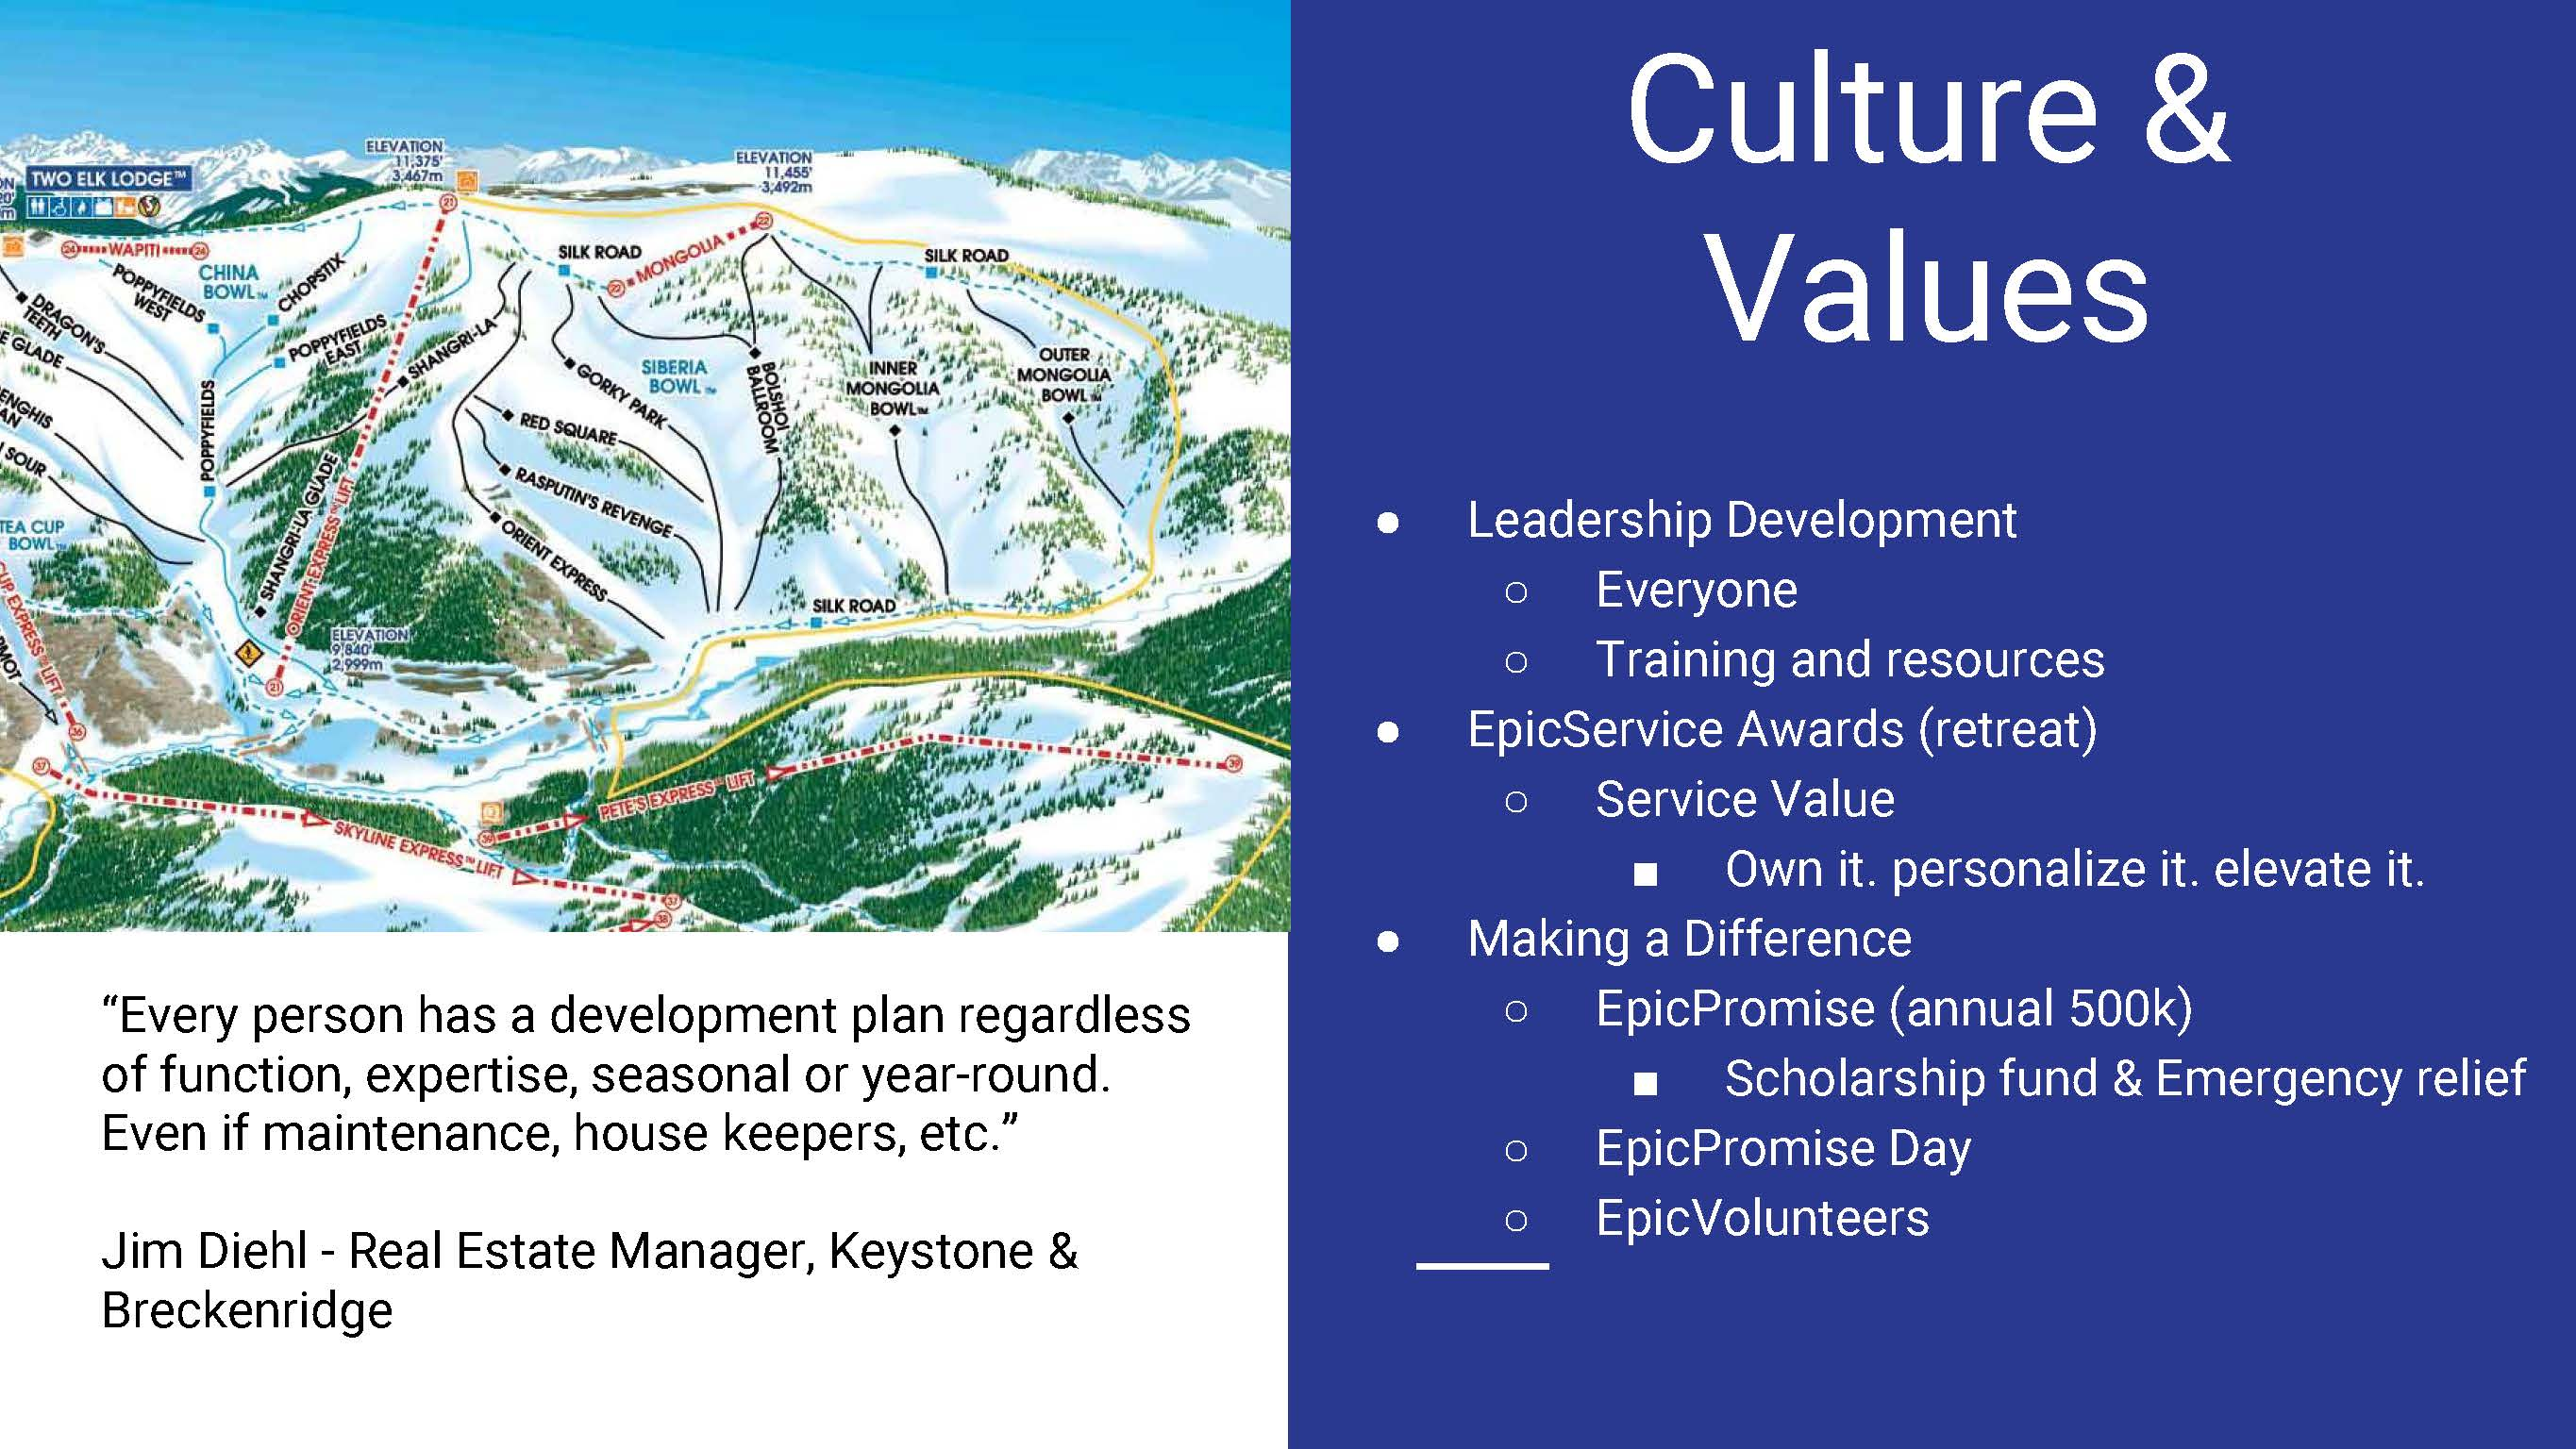 Human Capital Management Study - Vail_Page_09